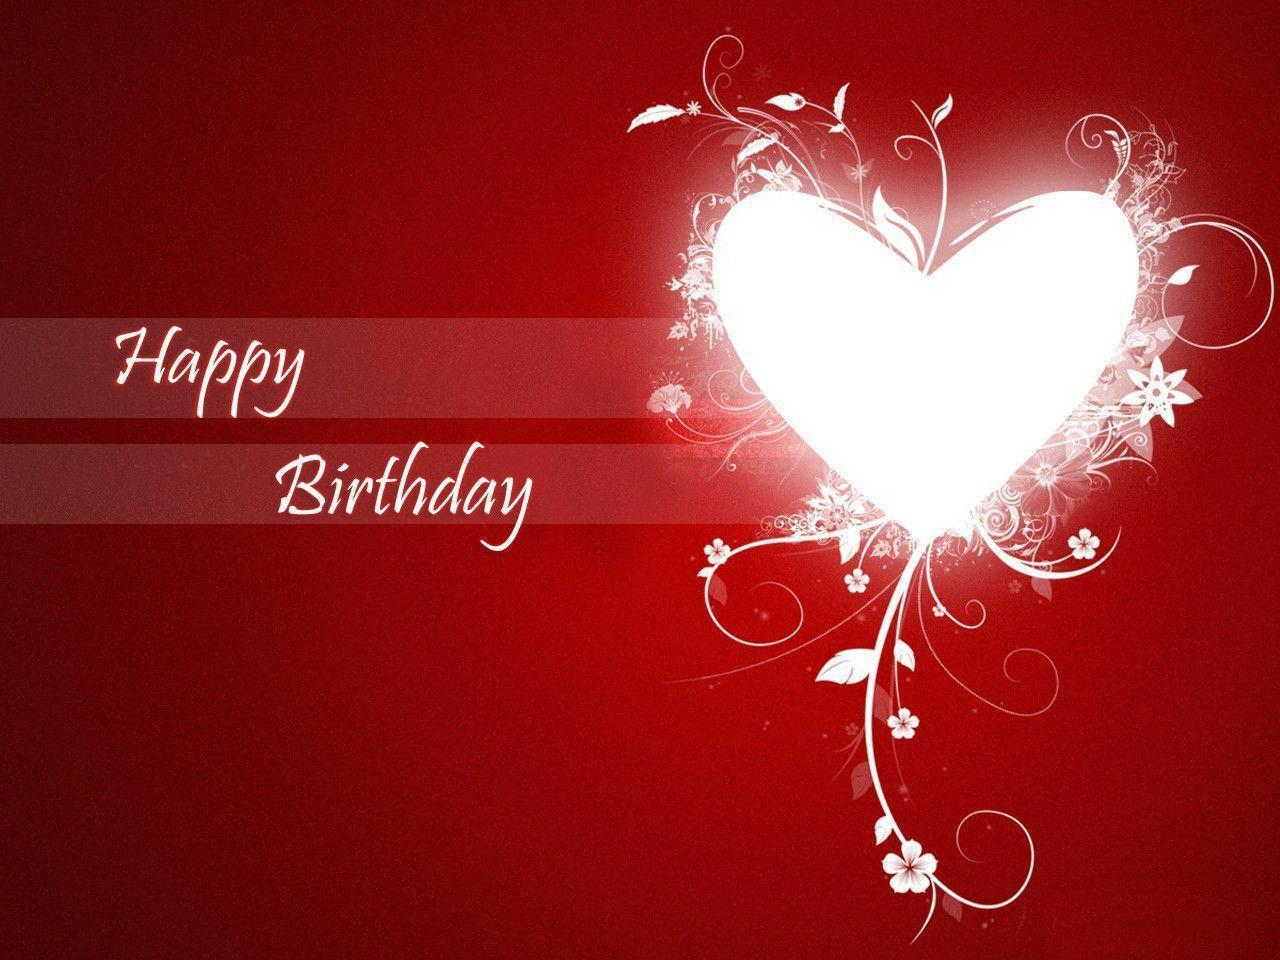 Love Wallpapers With Messages Hd : Happy Birthday Love Wallpapers - Wallpaper cave